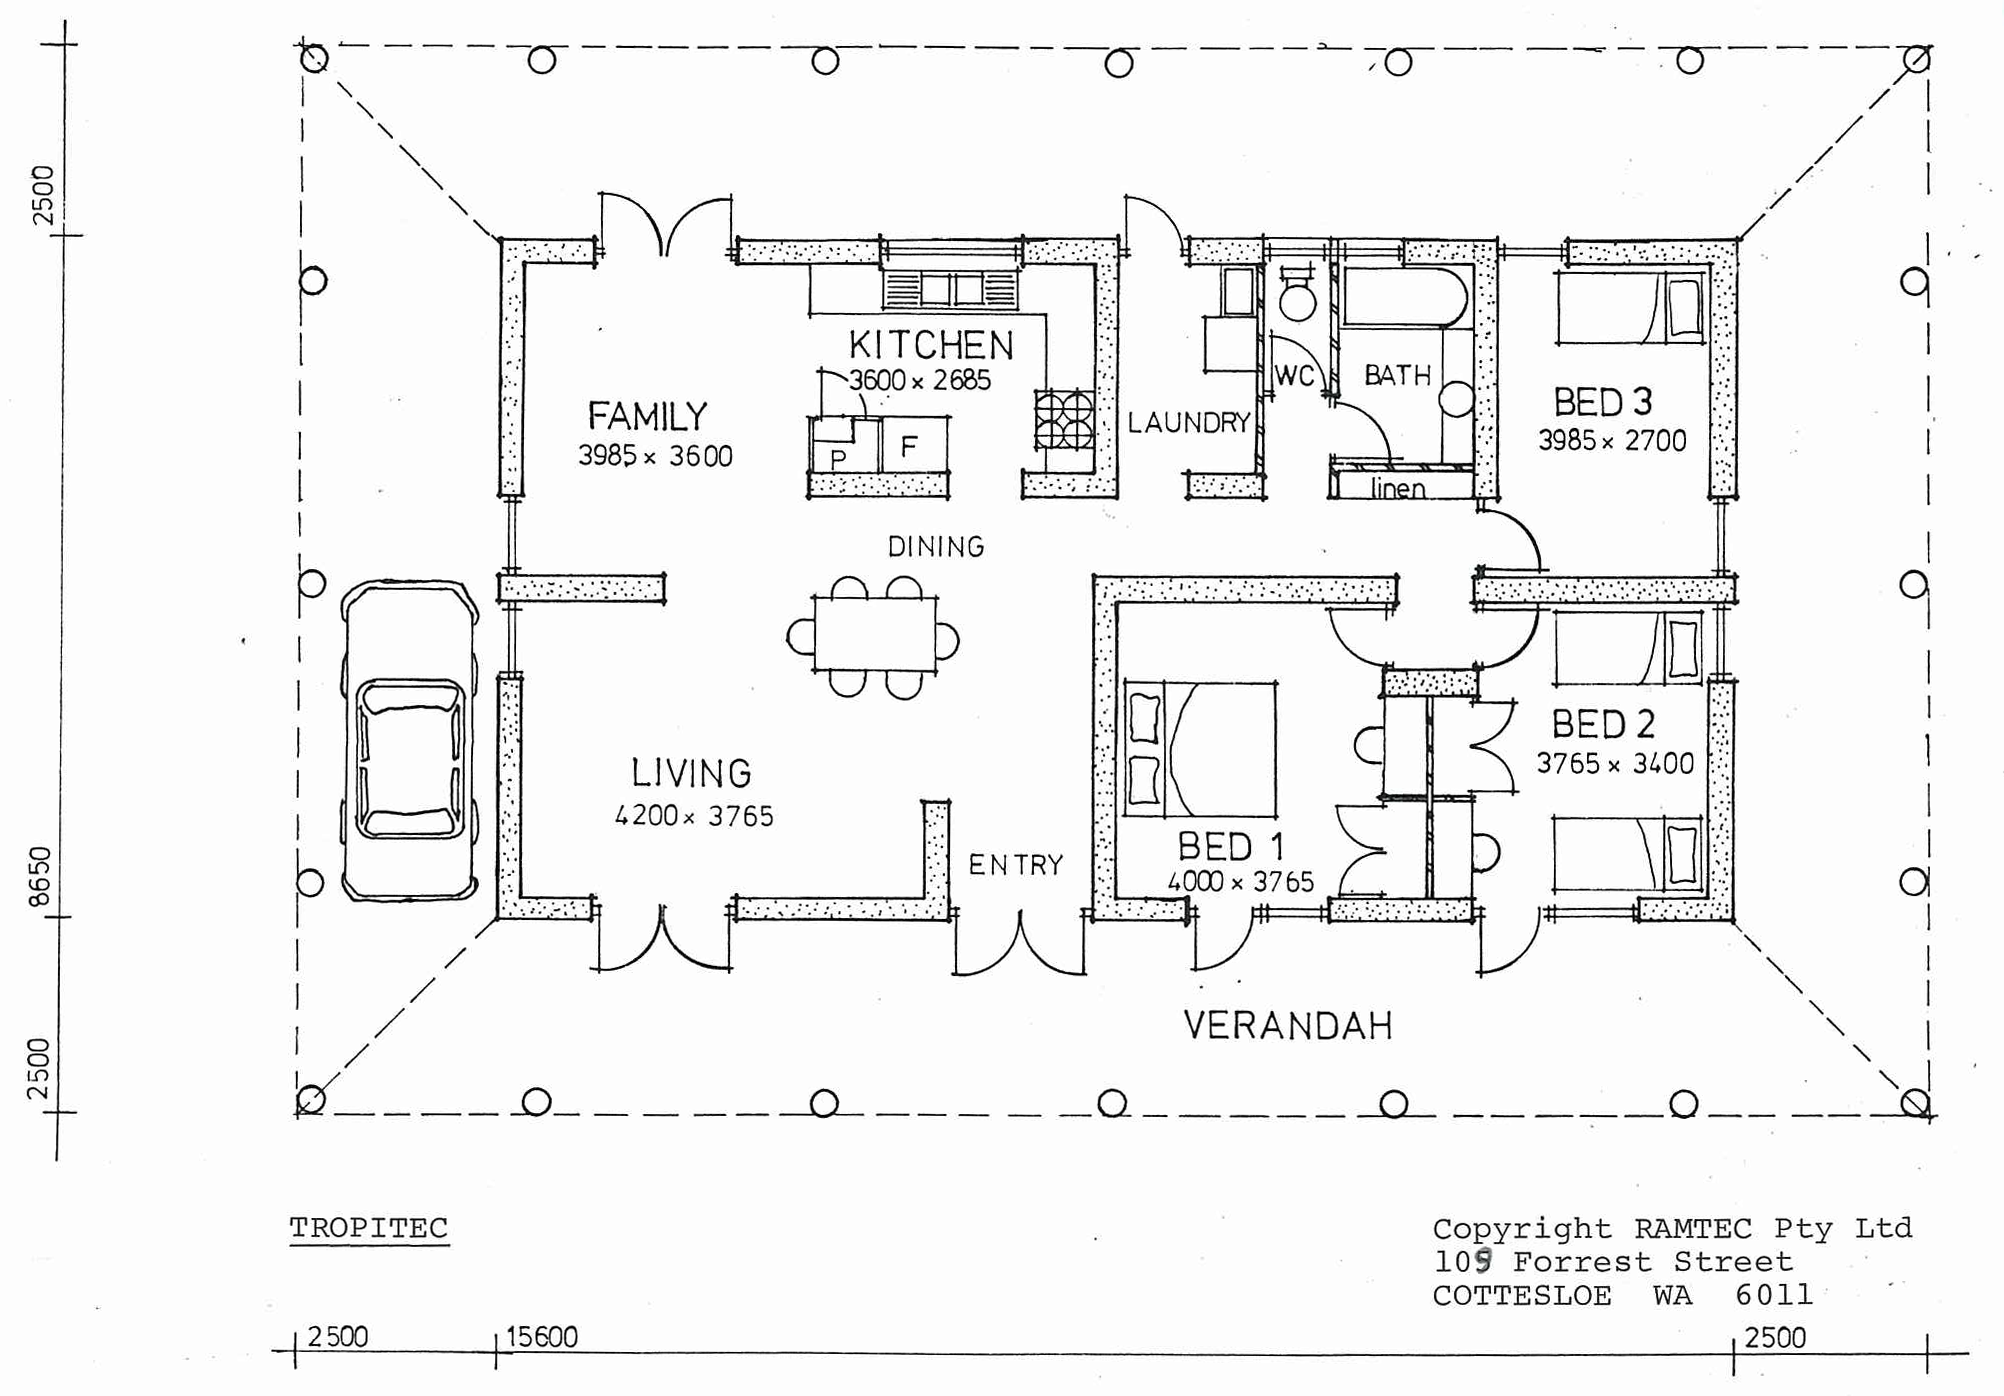 simple rammed earth floor plan | Natural Home Building | Pinterest ...